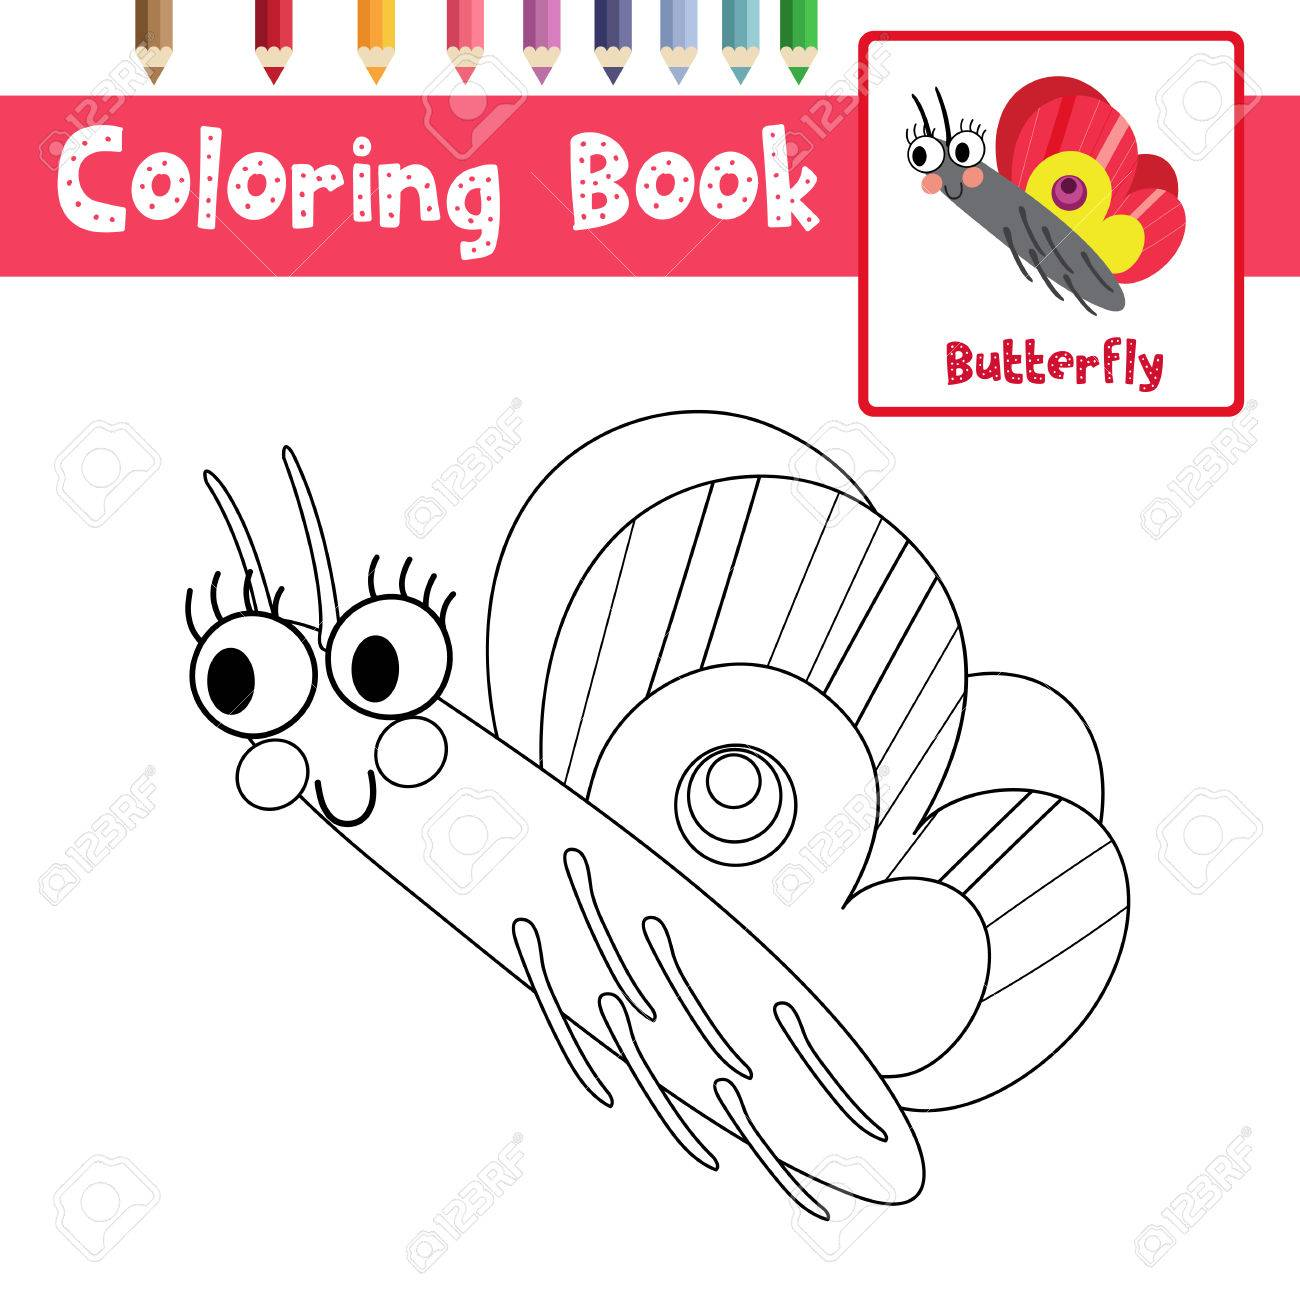 Great Coloring Page Of Butterfly Side View Animals For Preschool Kids Activity  Educational Worksheet. Vector Illustration